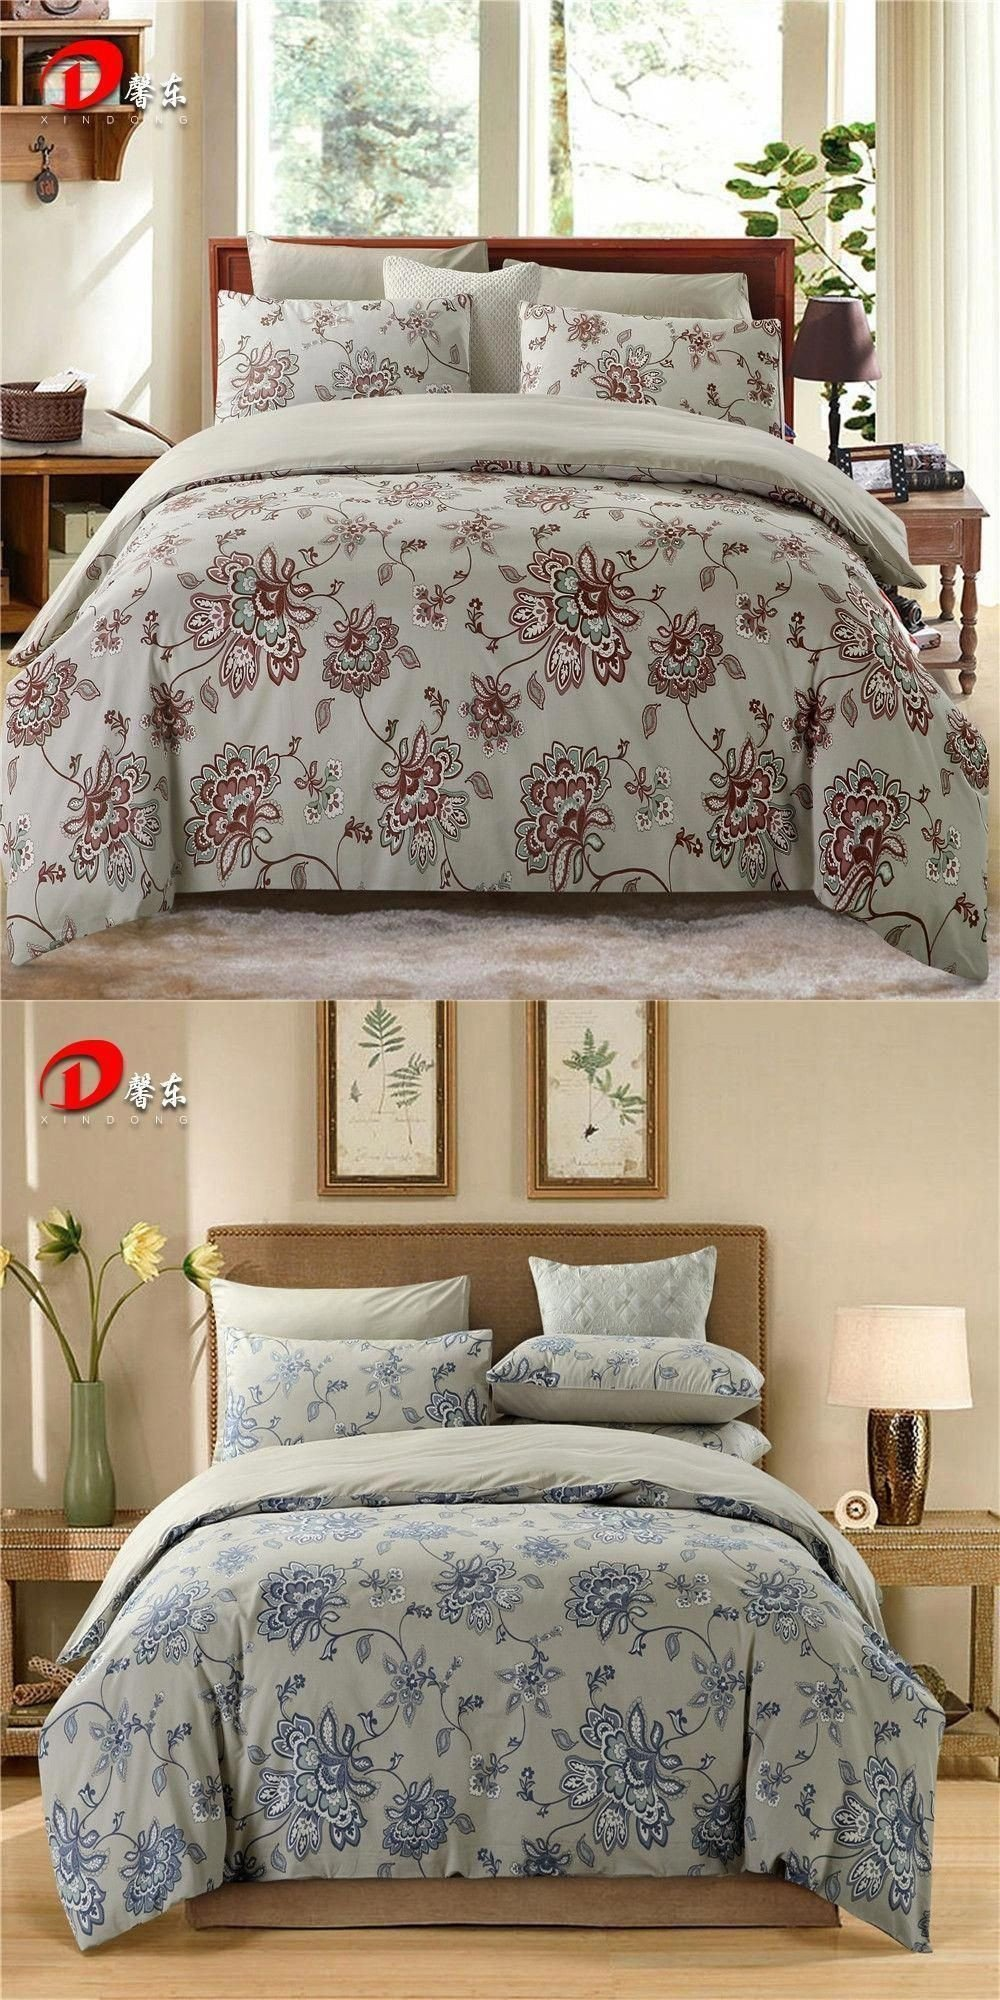 Bedroom Bedding and Curtain Set Inspirational Luxury Bedding Sets Sale